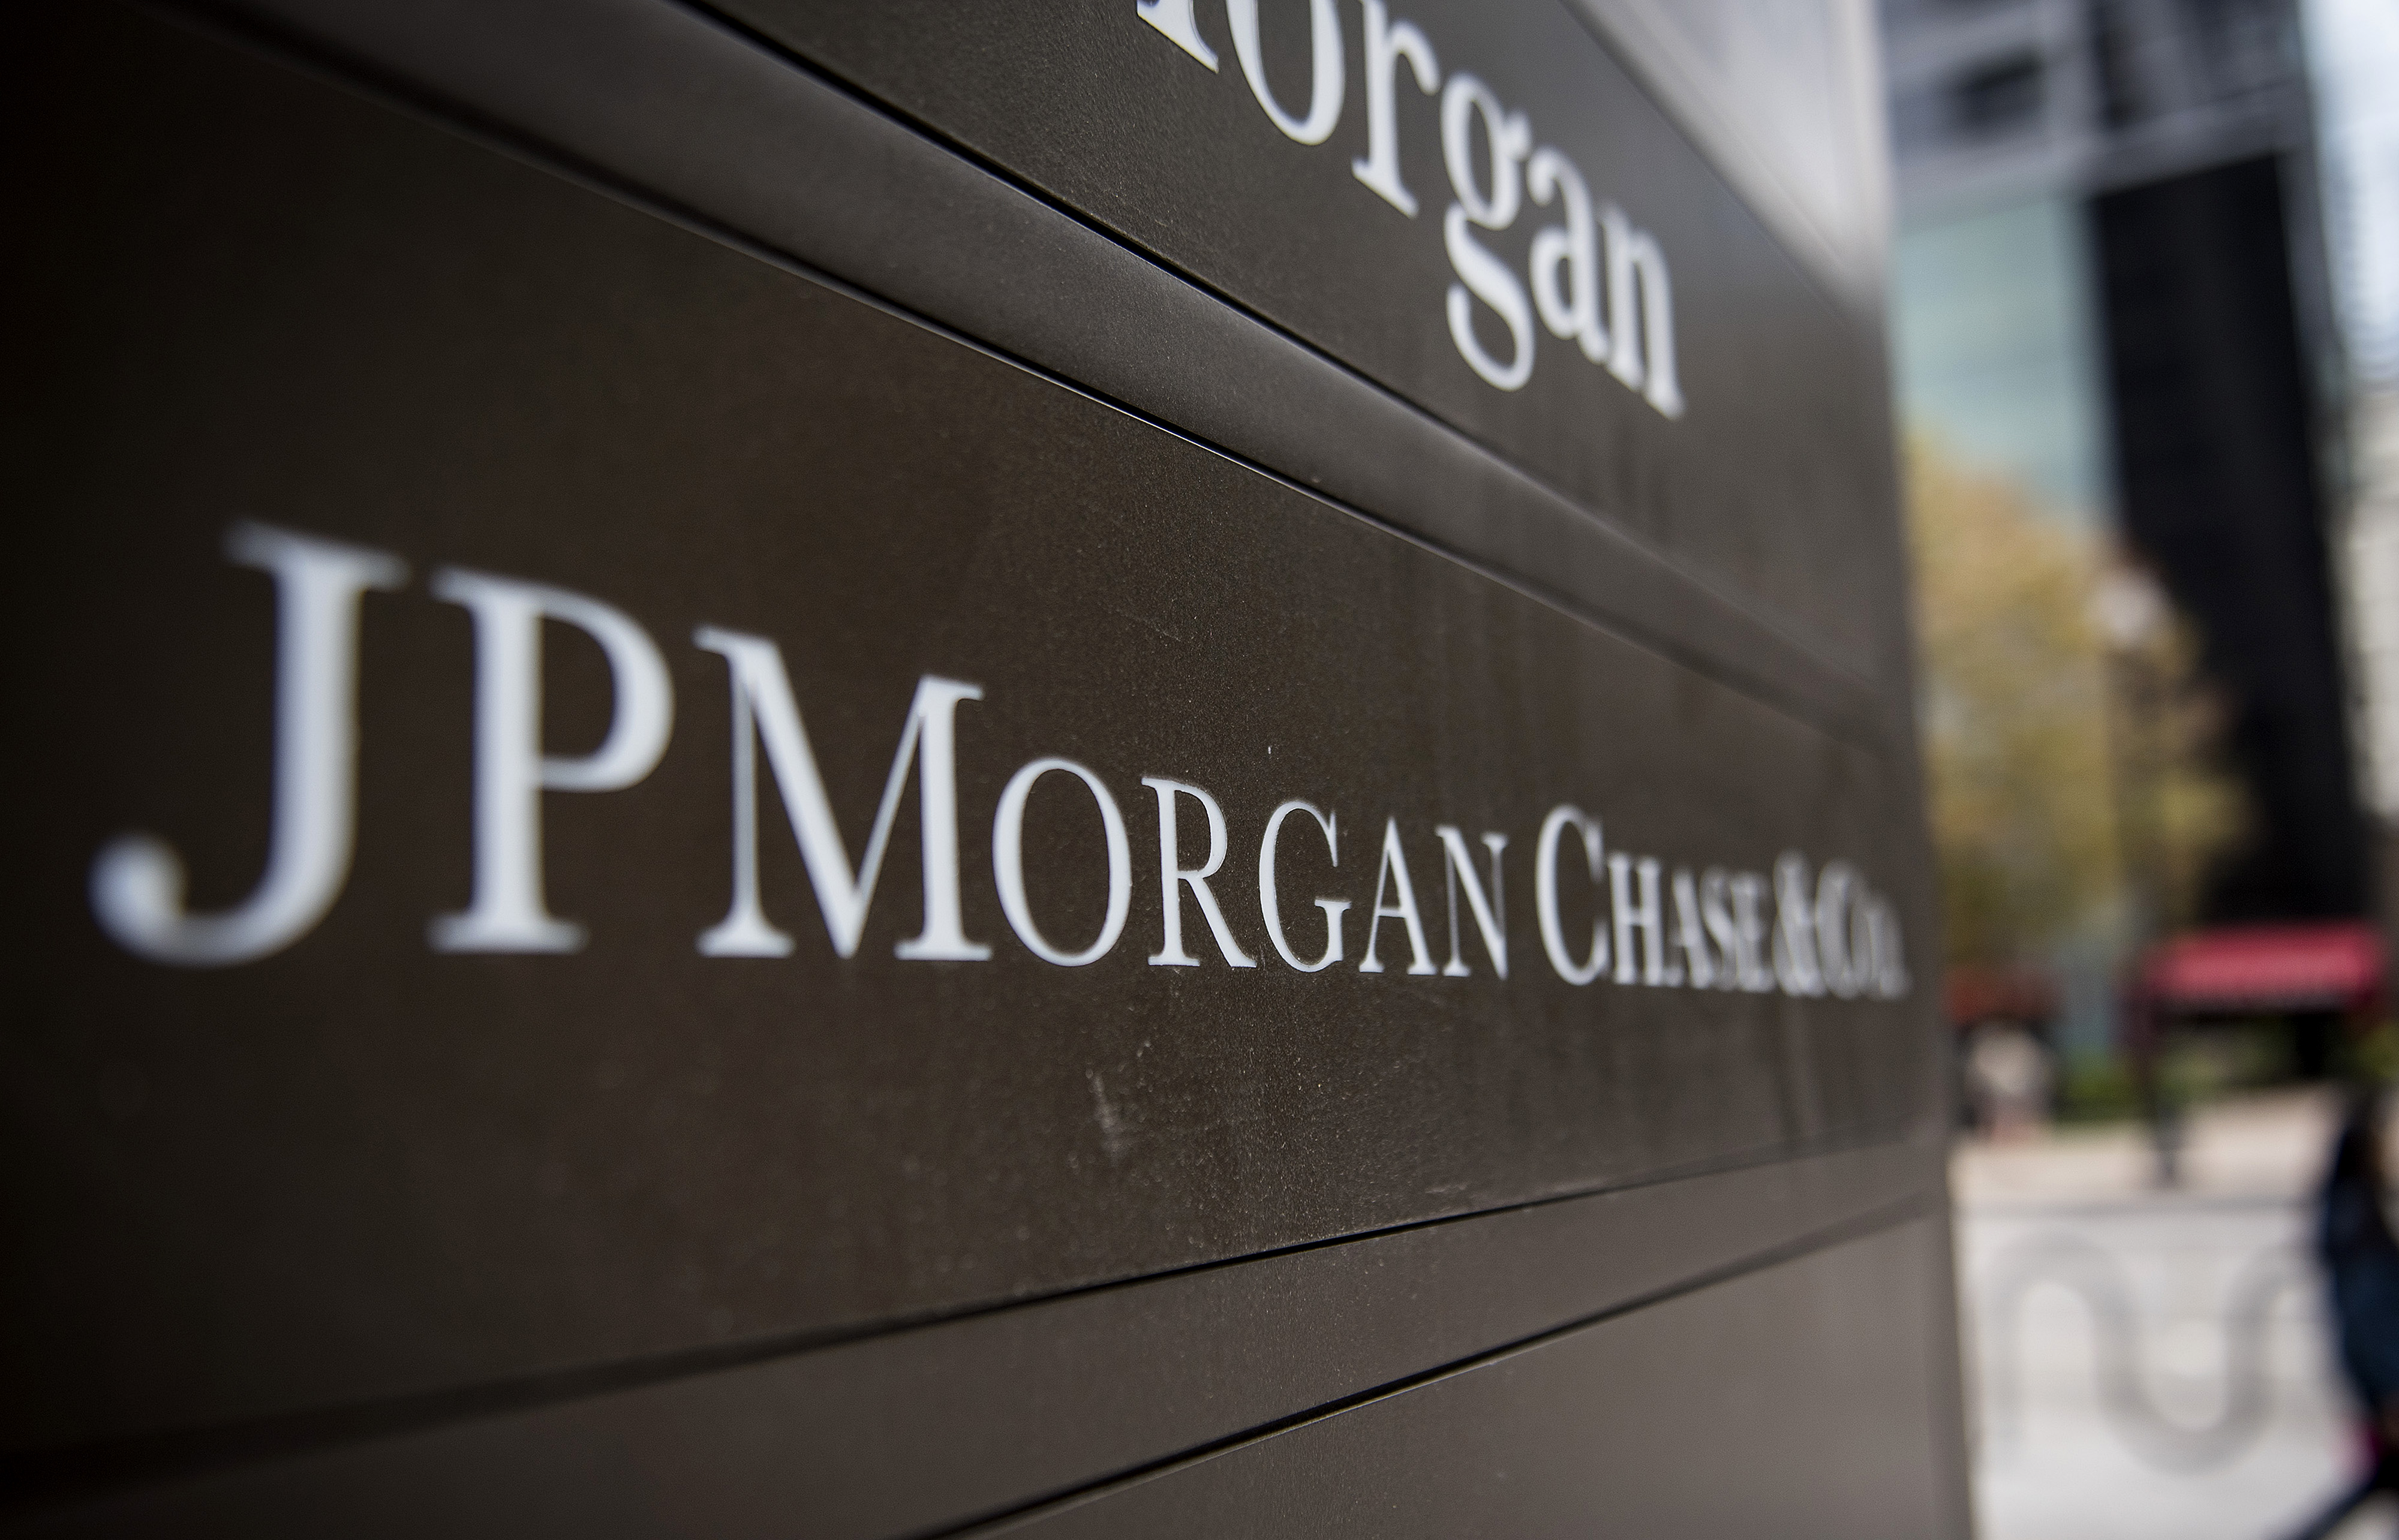 j p morgan chase login